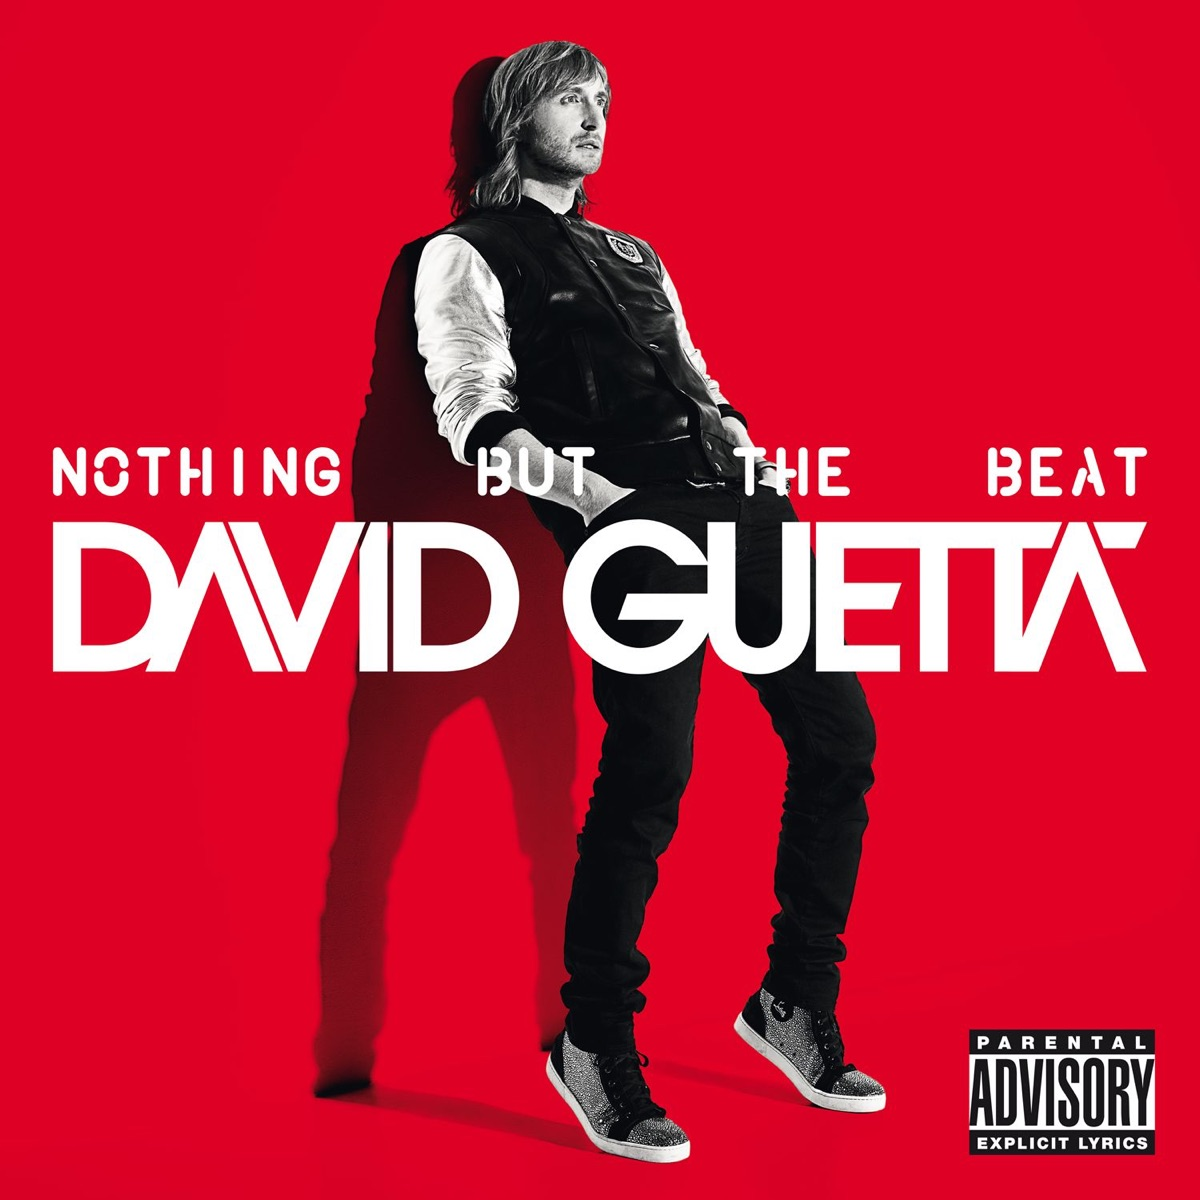 Nothing But the Beat Album Cover by David Guetta